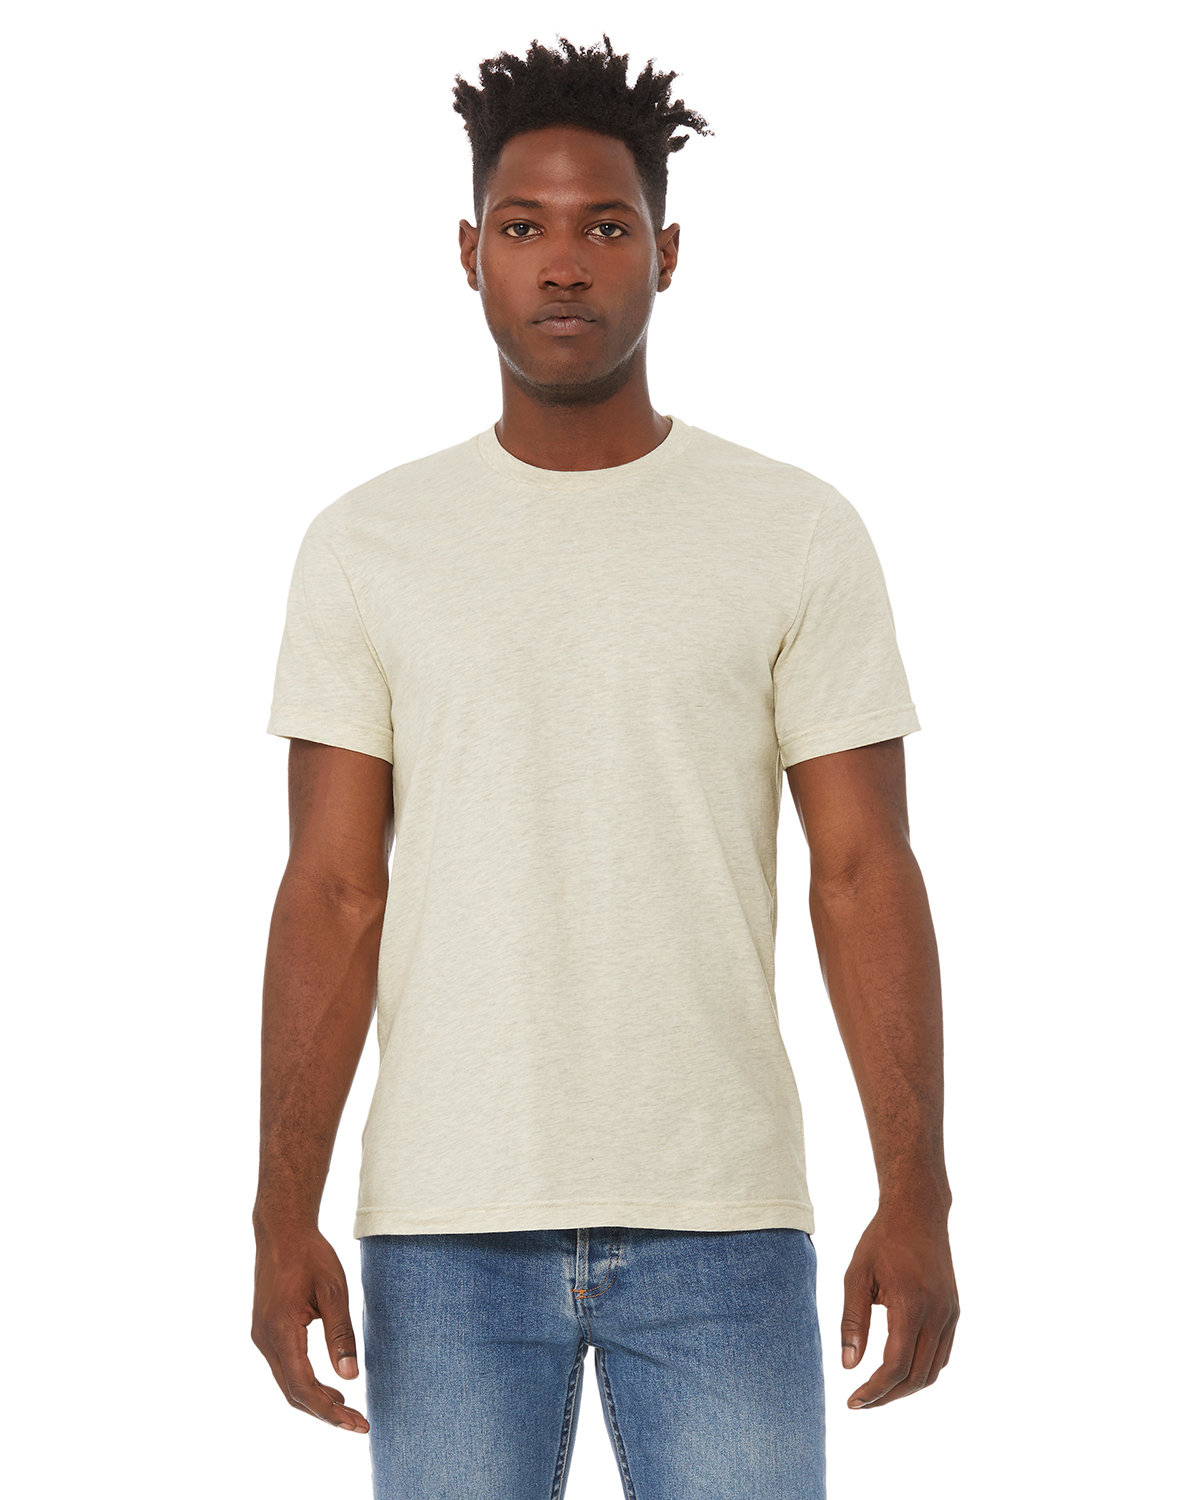 Bella + Canvas Unisex Heather CVC T-Shirt HTHR PRSM NATURL